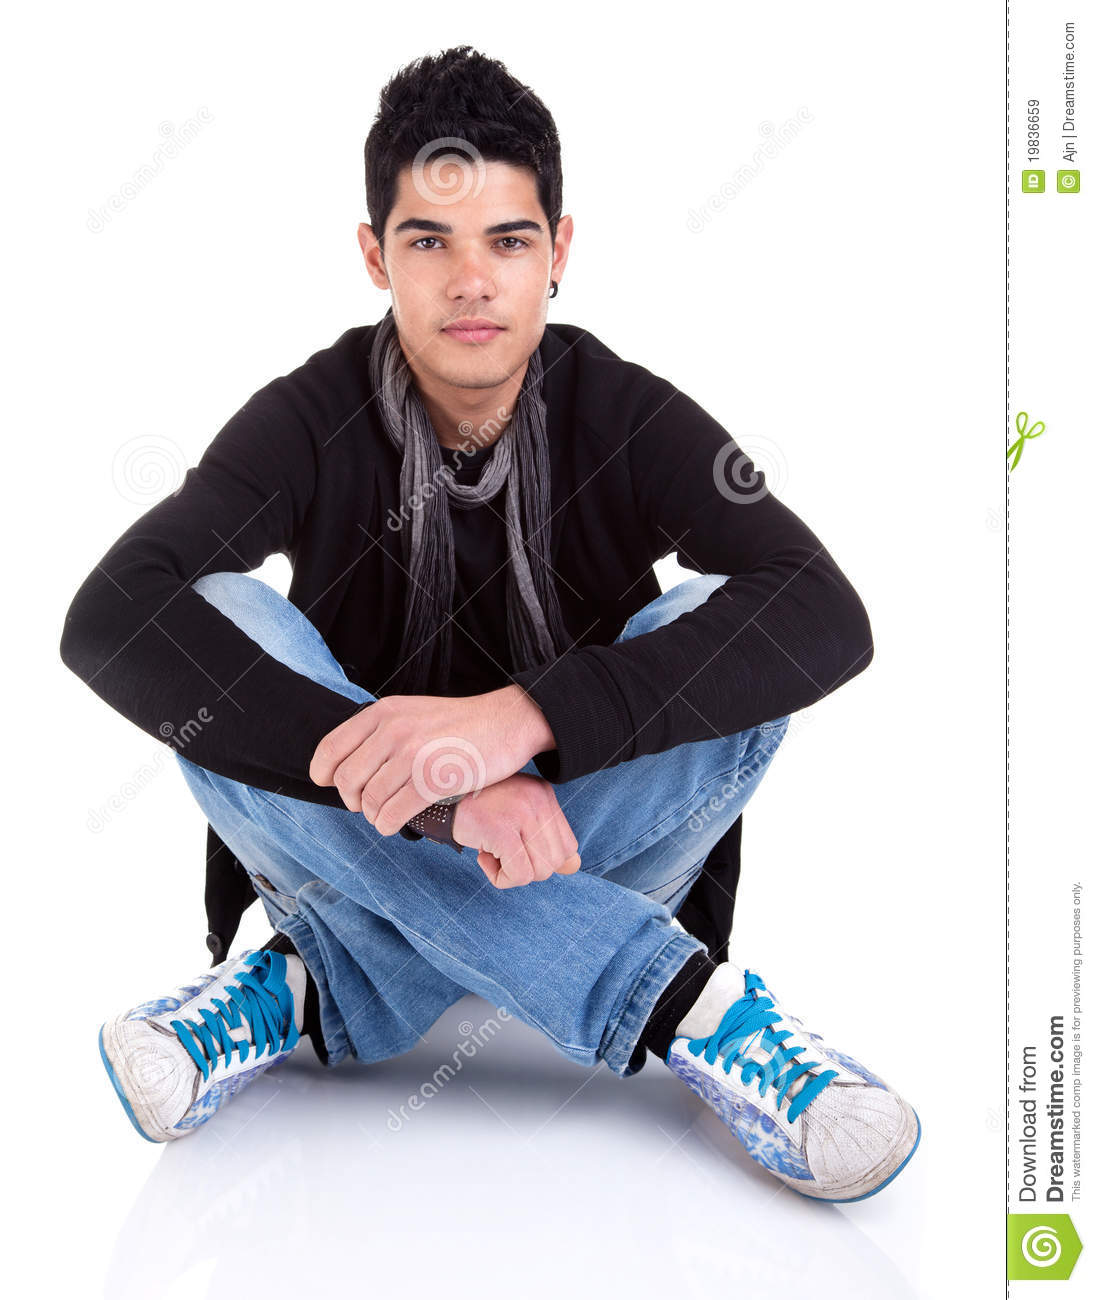 Handsome Young Man Sitting on the Floor